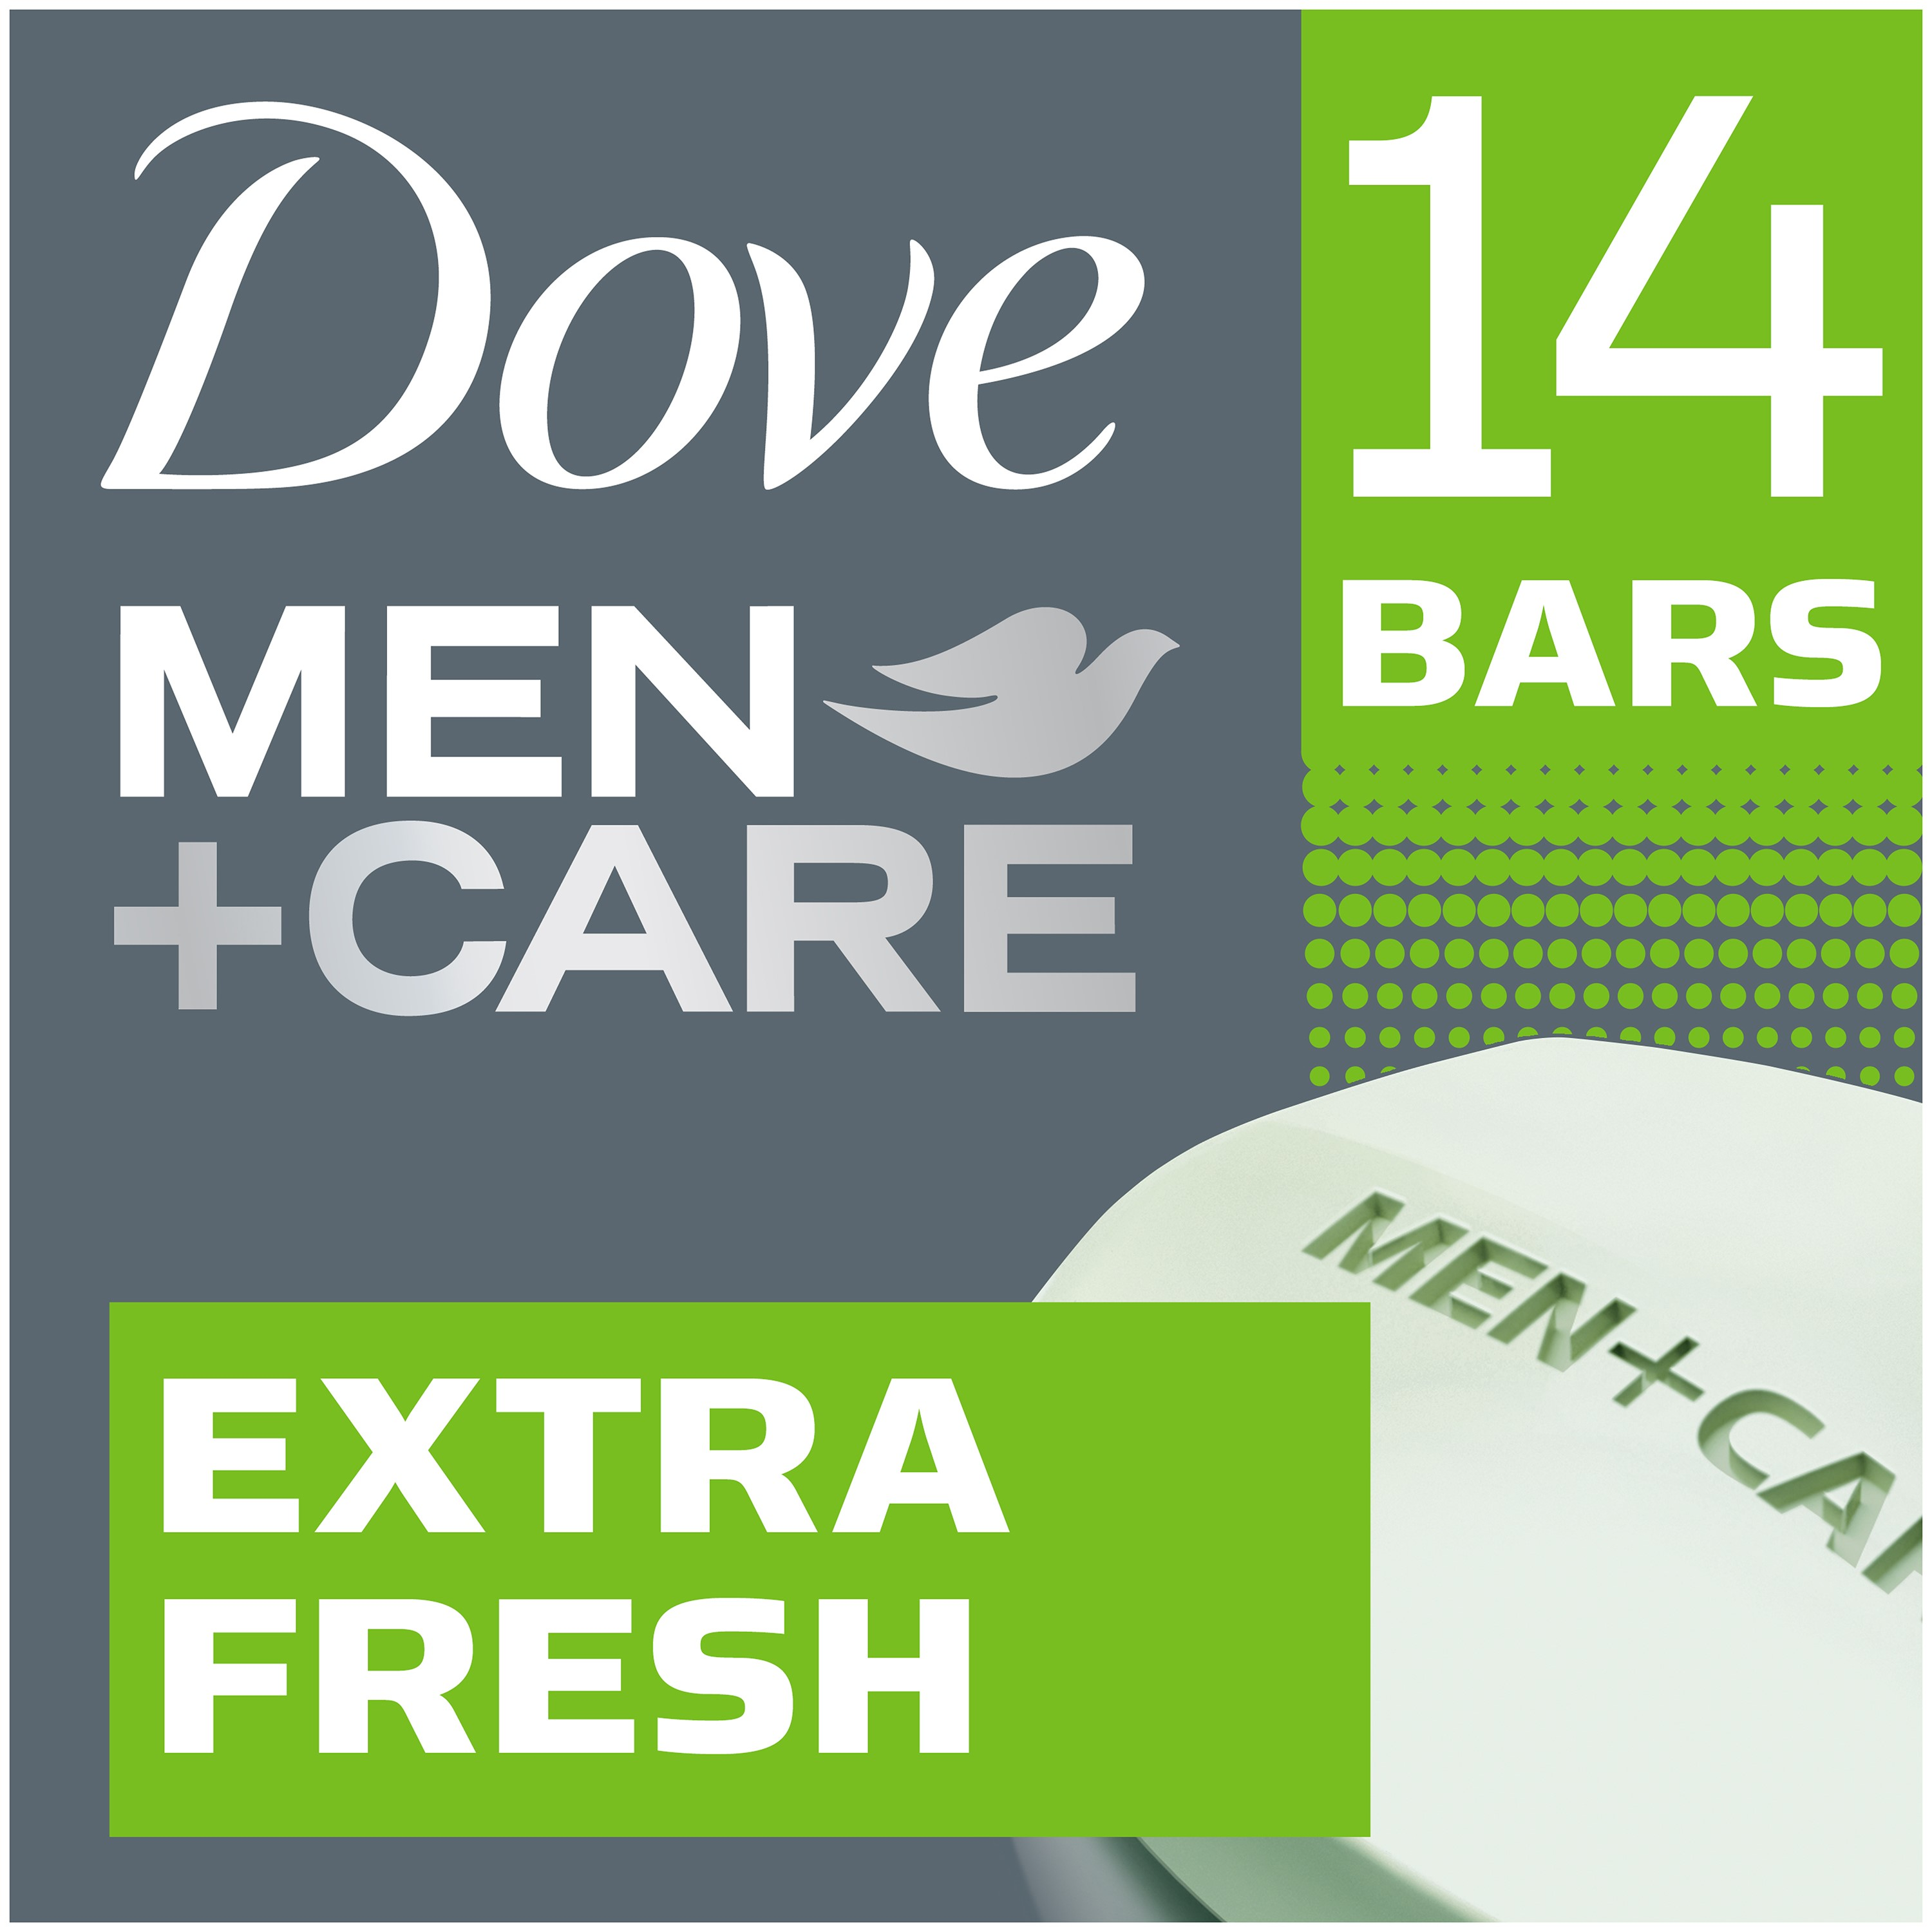 Dove Men+Care Body and Face Bar, Extra Fresh Scent, 4 Oz, 14 Ct